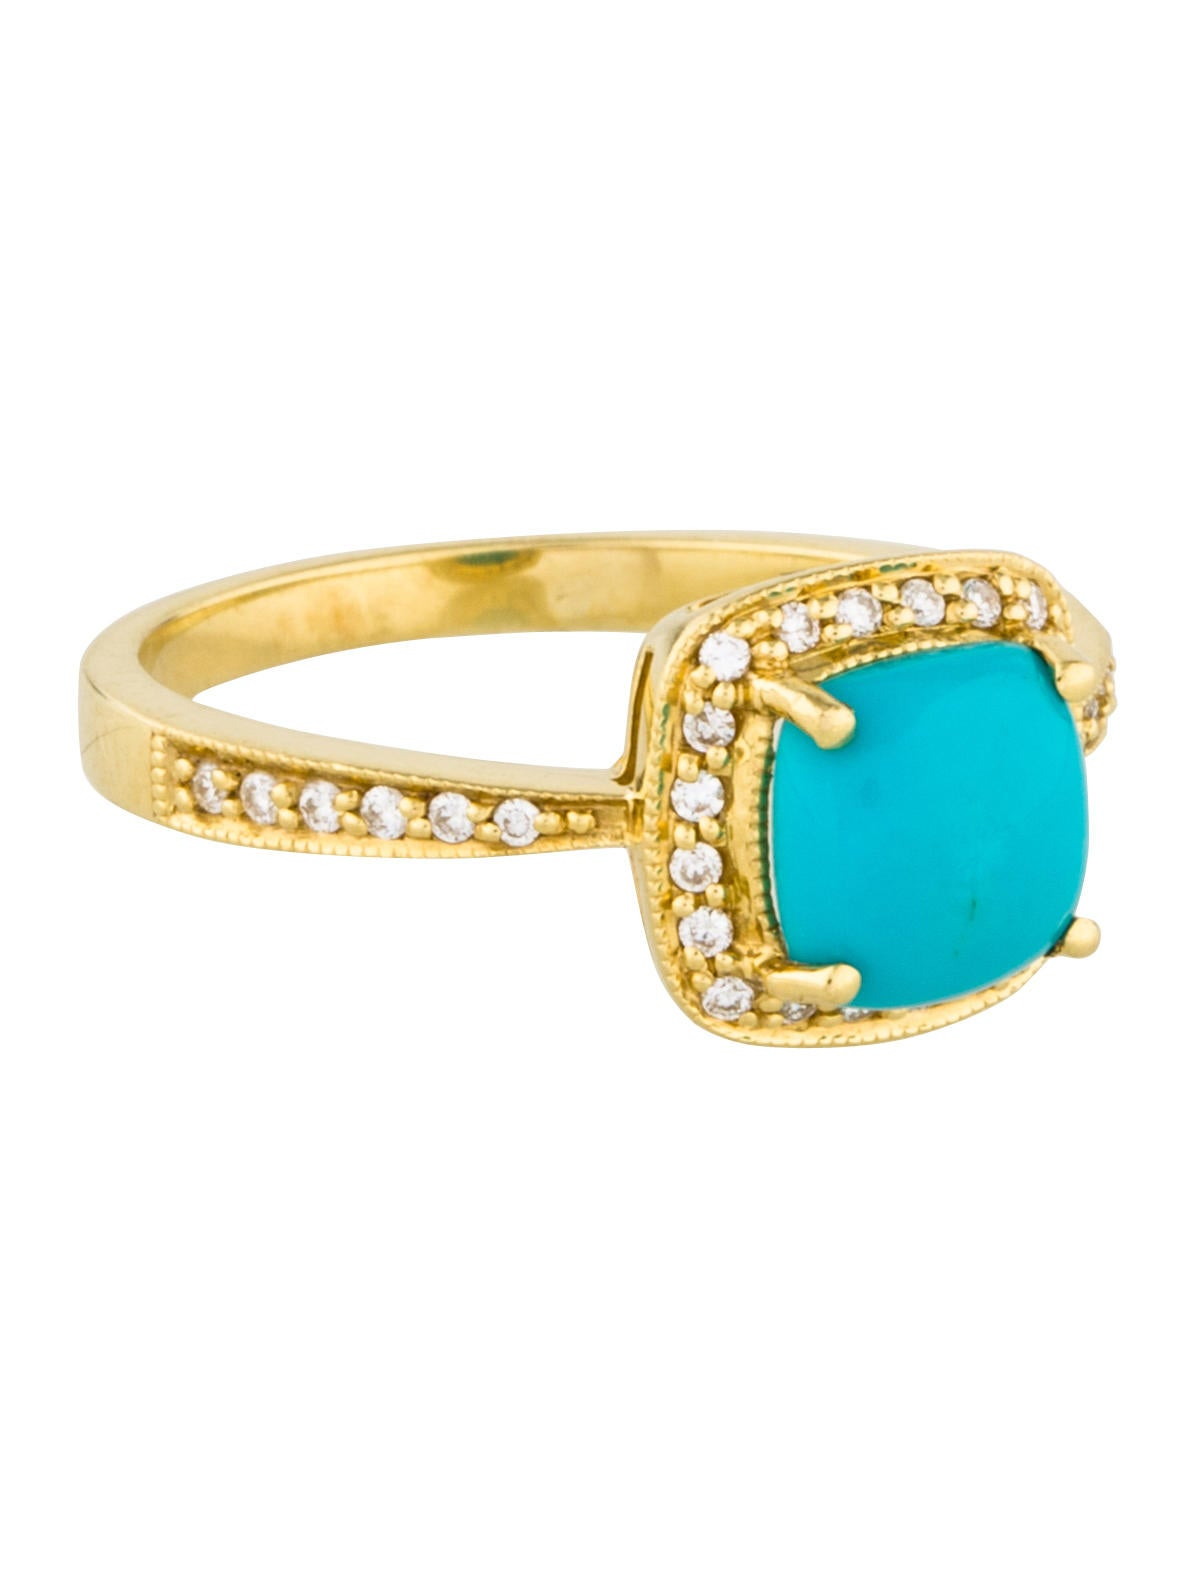 jude frances 18k turquoise ring rings